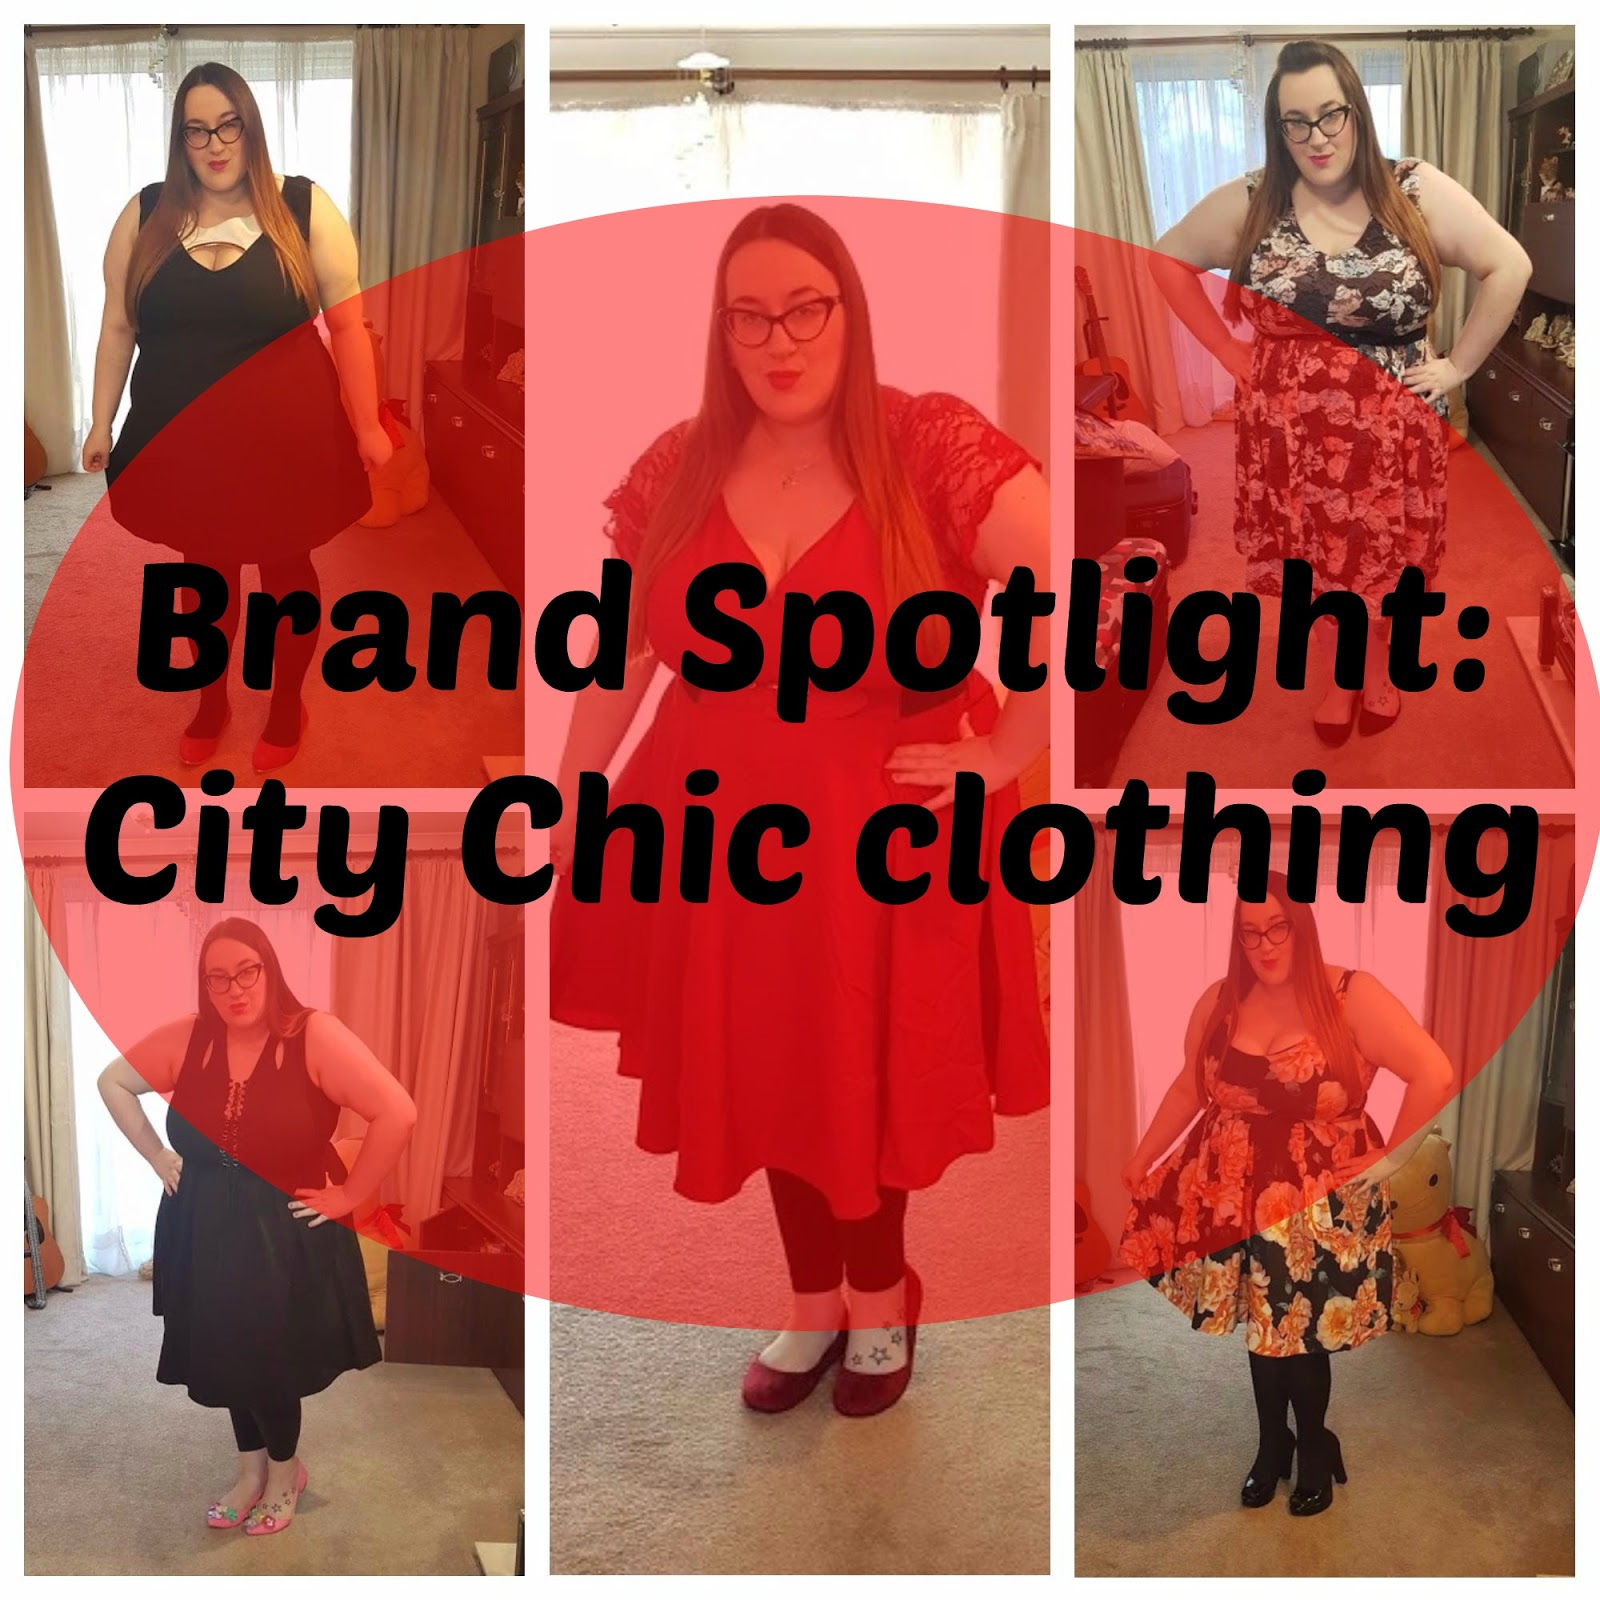 754ccc97988 Brand Spotlight  City Chic clothing - Does My Blog Make Me Look Fat